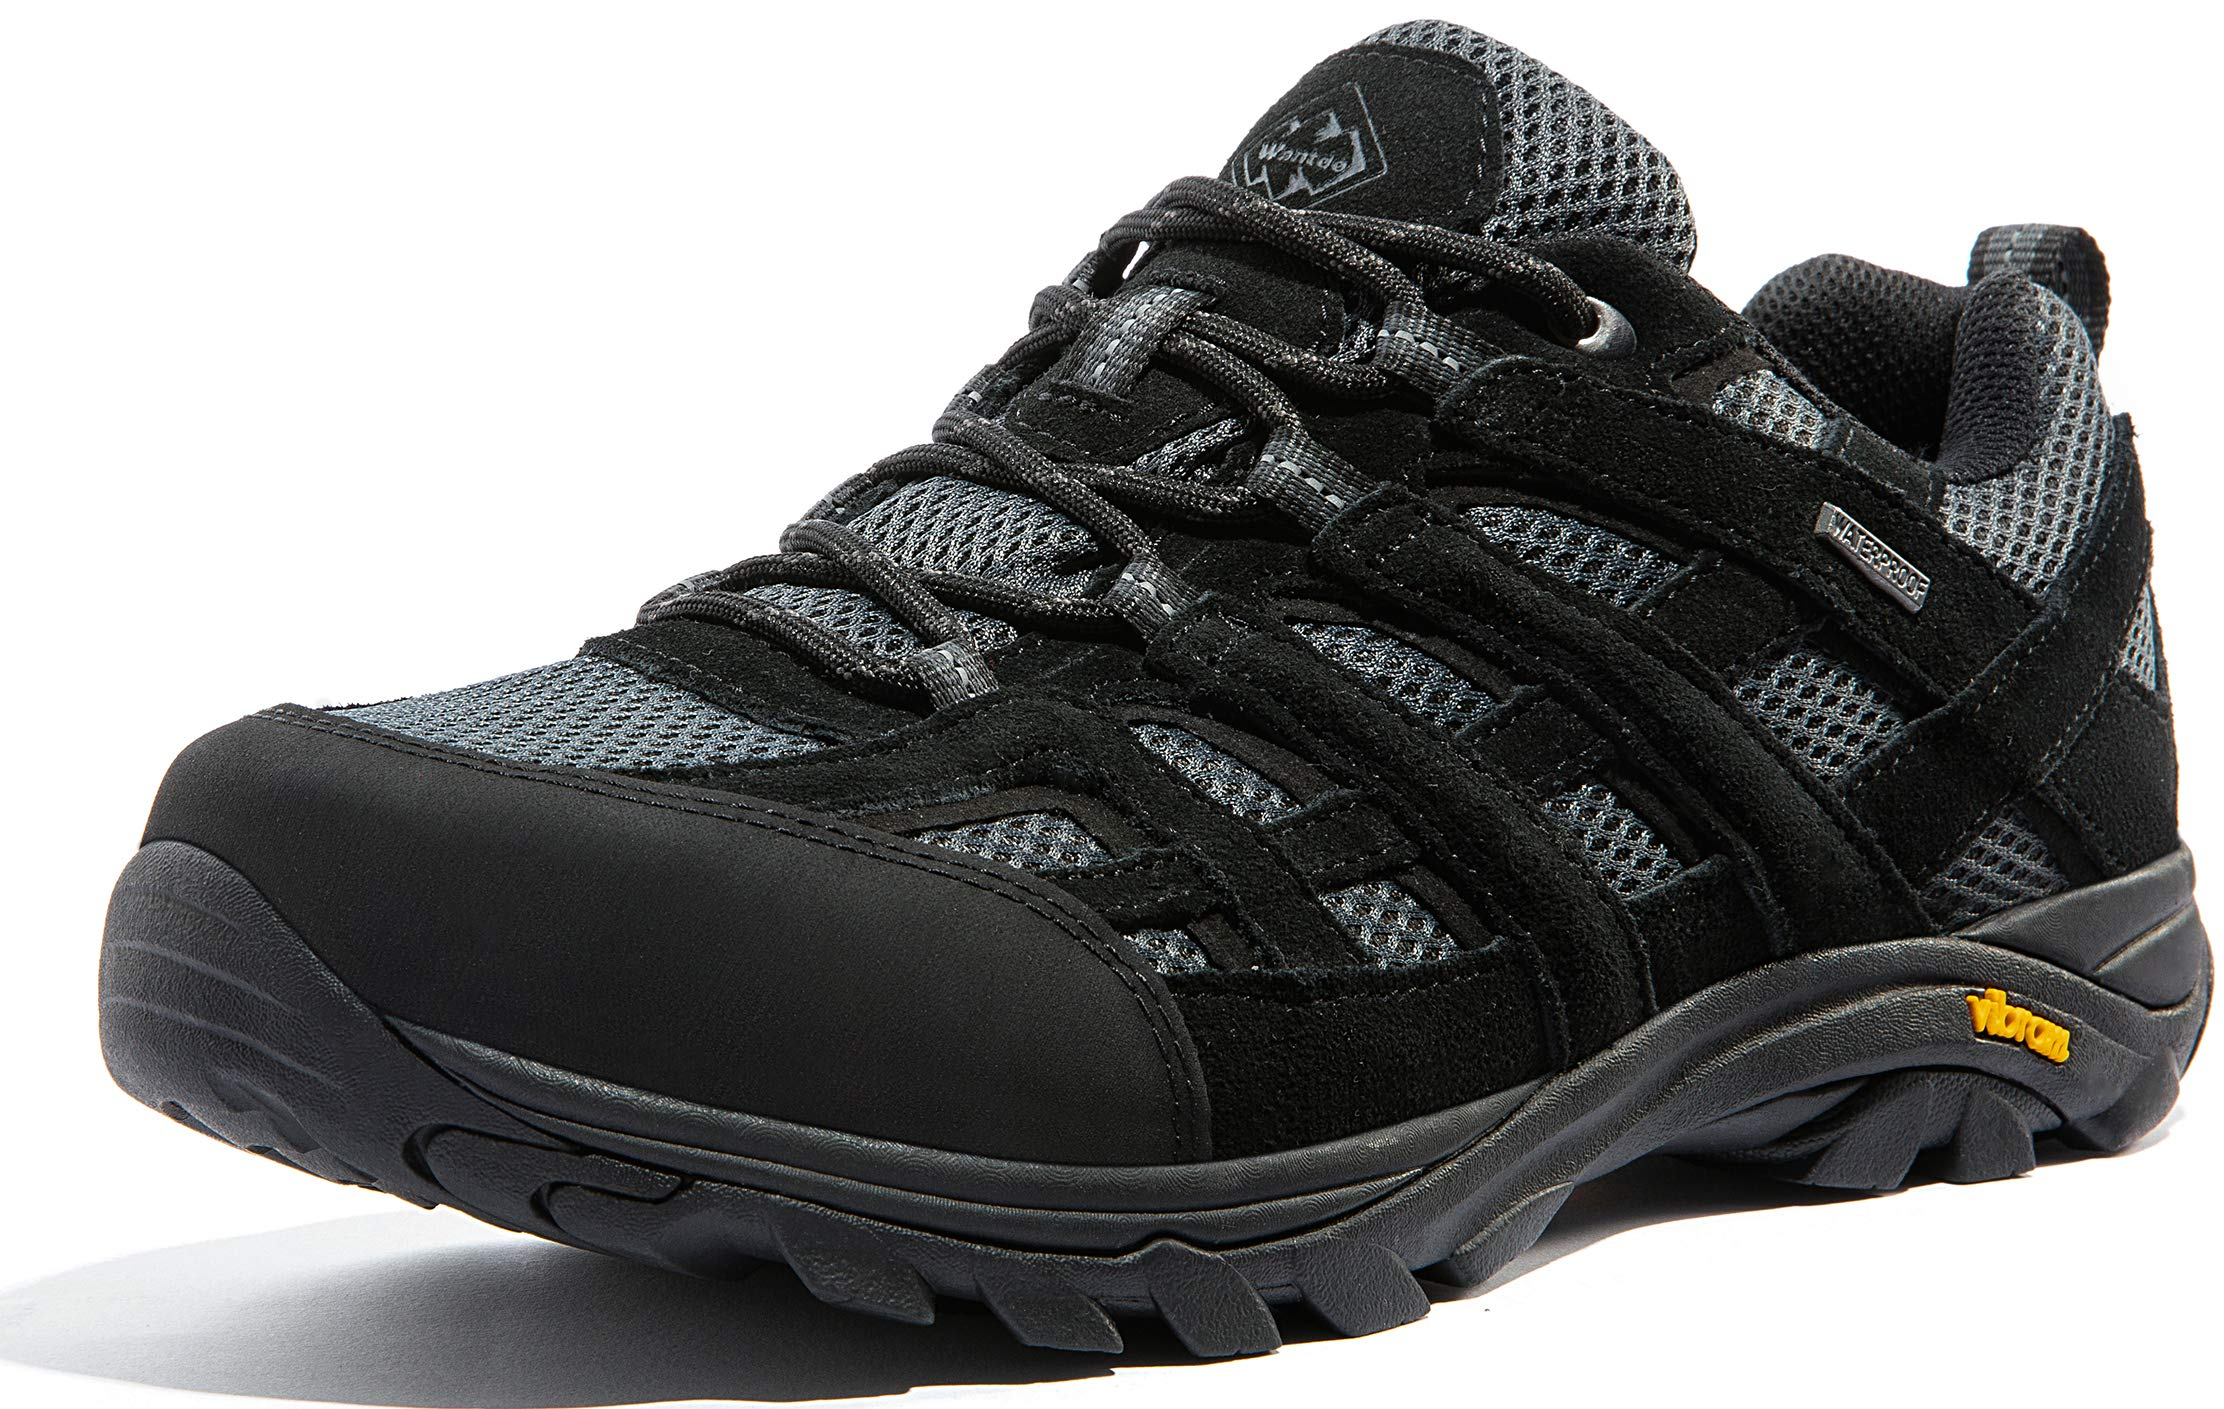 Wantdo Men's Waterproof Hiking Shoes Anti-Slip Shoes for Outdoor Mountain Trainer Hiking Camping 11 M US Black by Wantdo